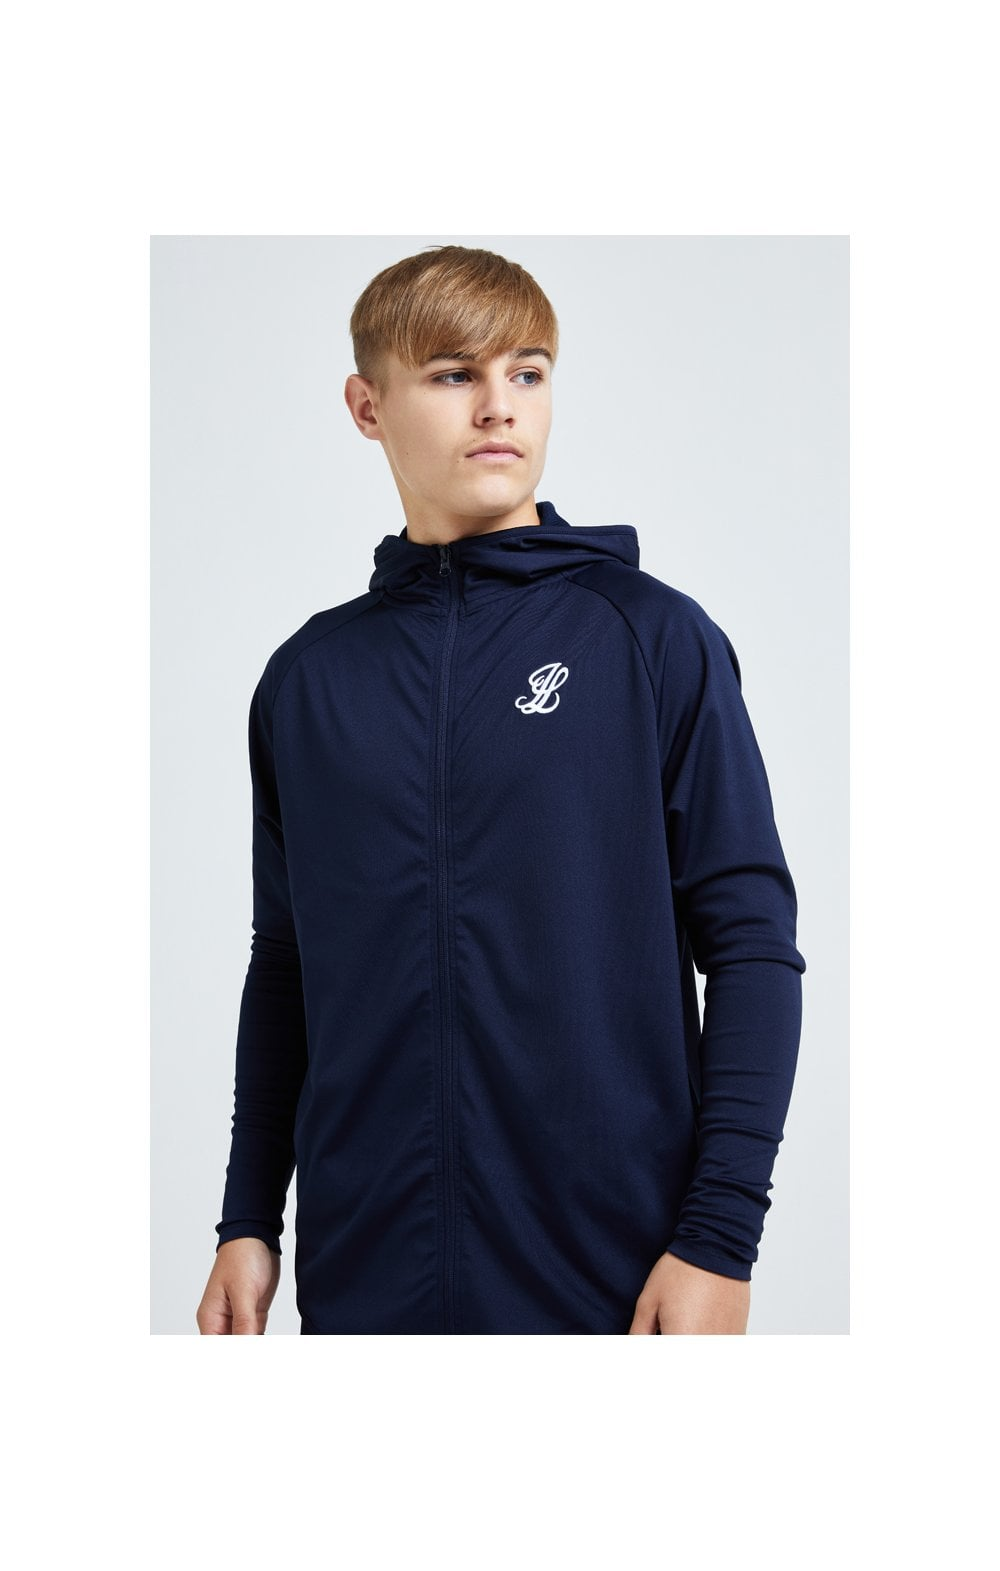 Illusive London Core Athlete Hoodie - Navy